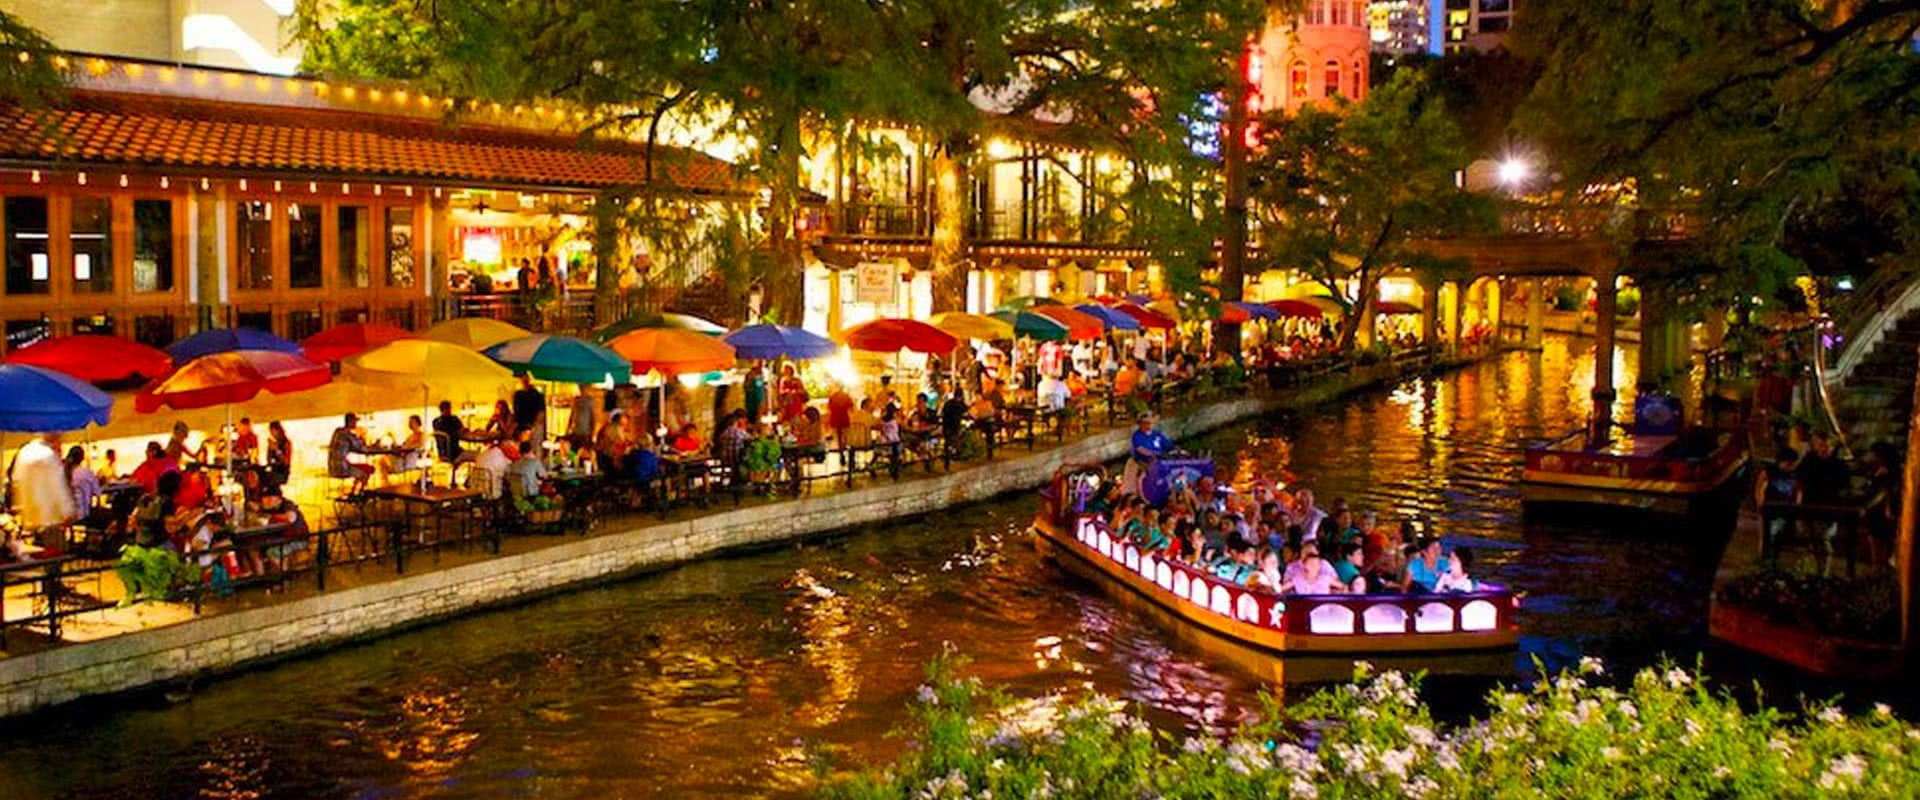 San-Antonio-Riverwalk-01